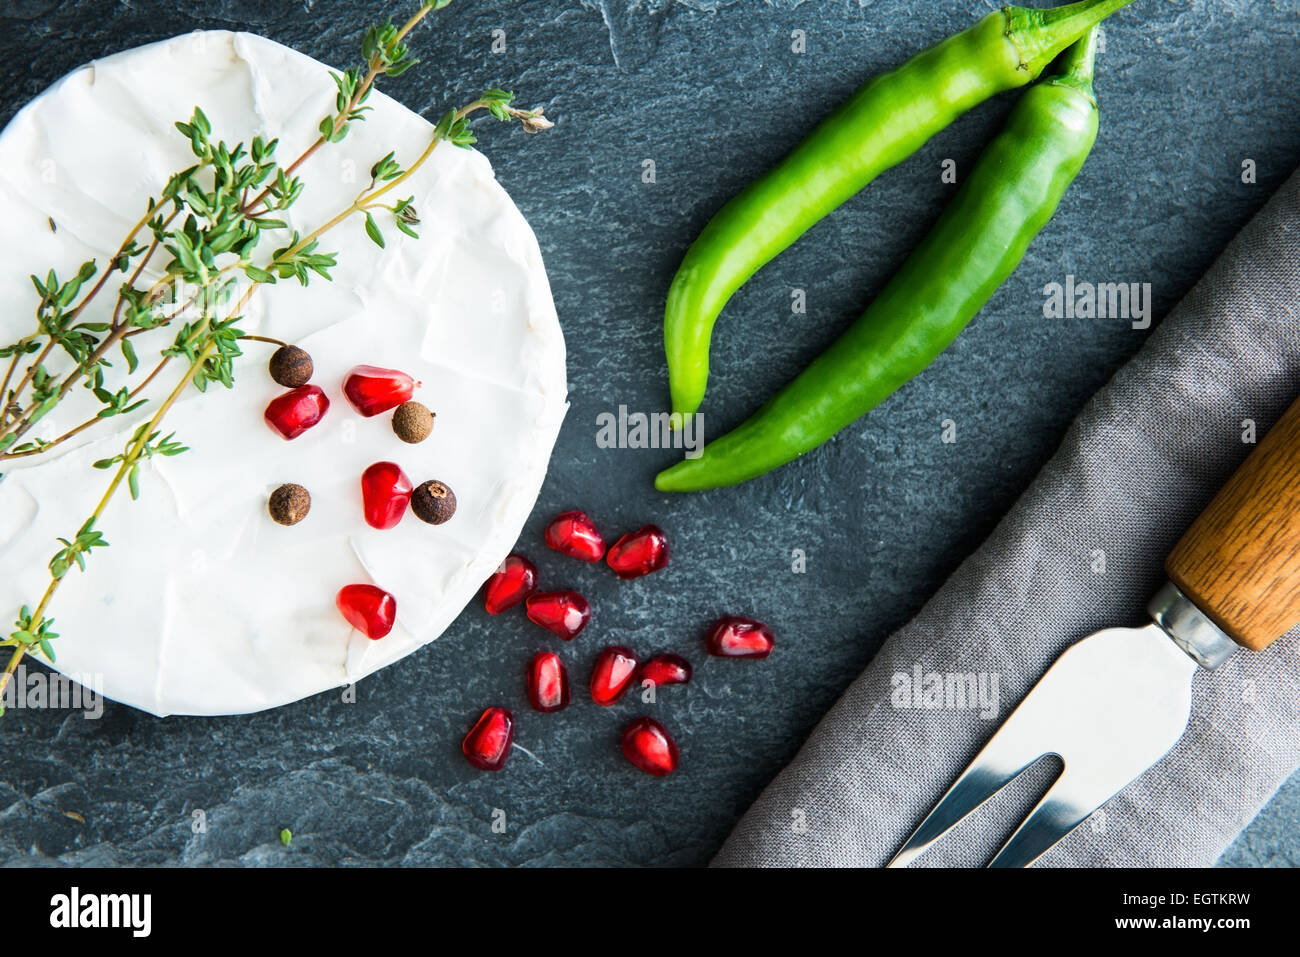 Closeup on camembert on stone substrate - Stock Image